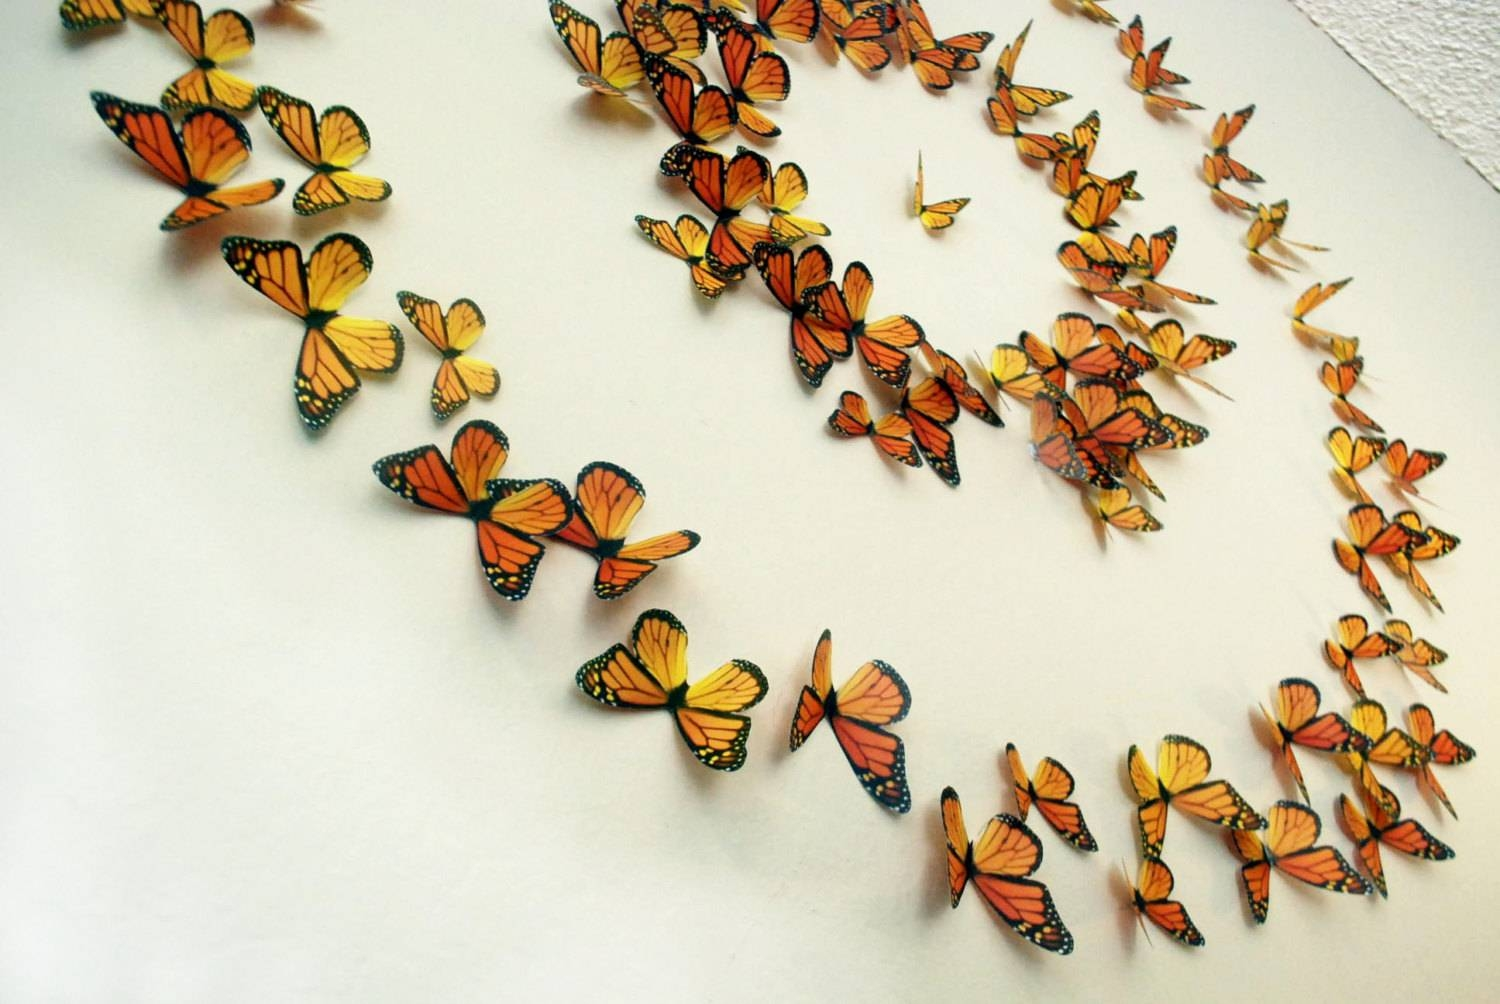 Monarch Butterflies 3D Wall Art Set Of 100 Throughout Most Current 3D Wall Art Etsy (View 14 of 20)